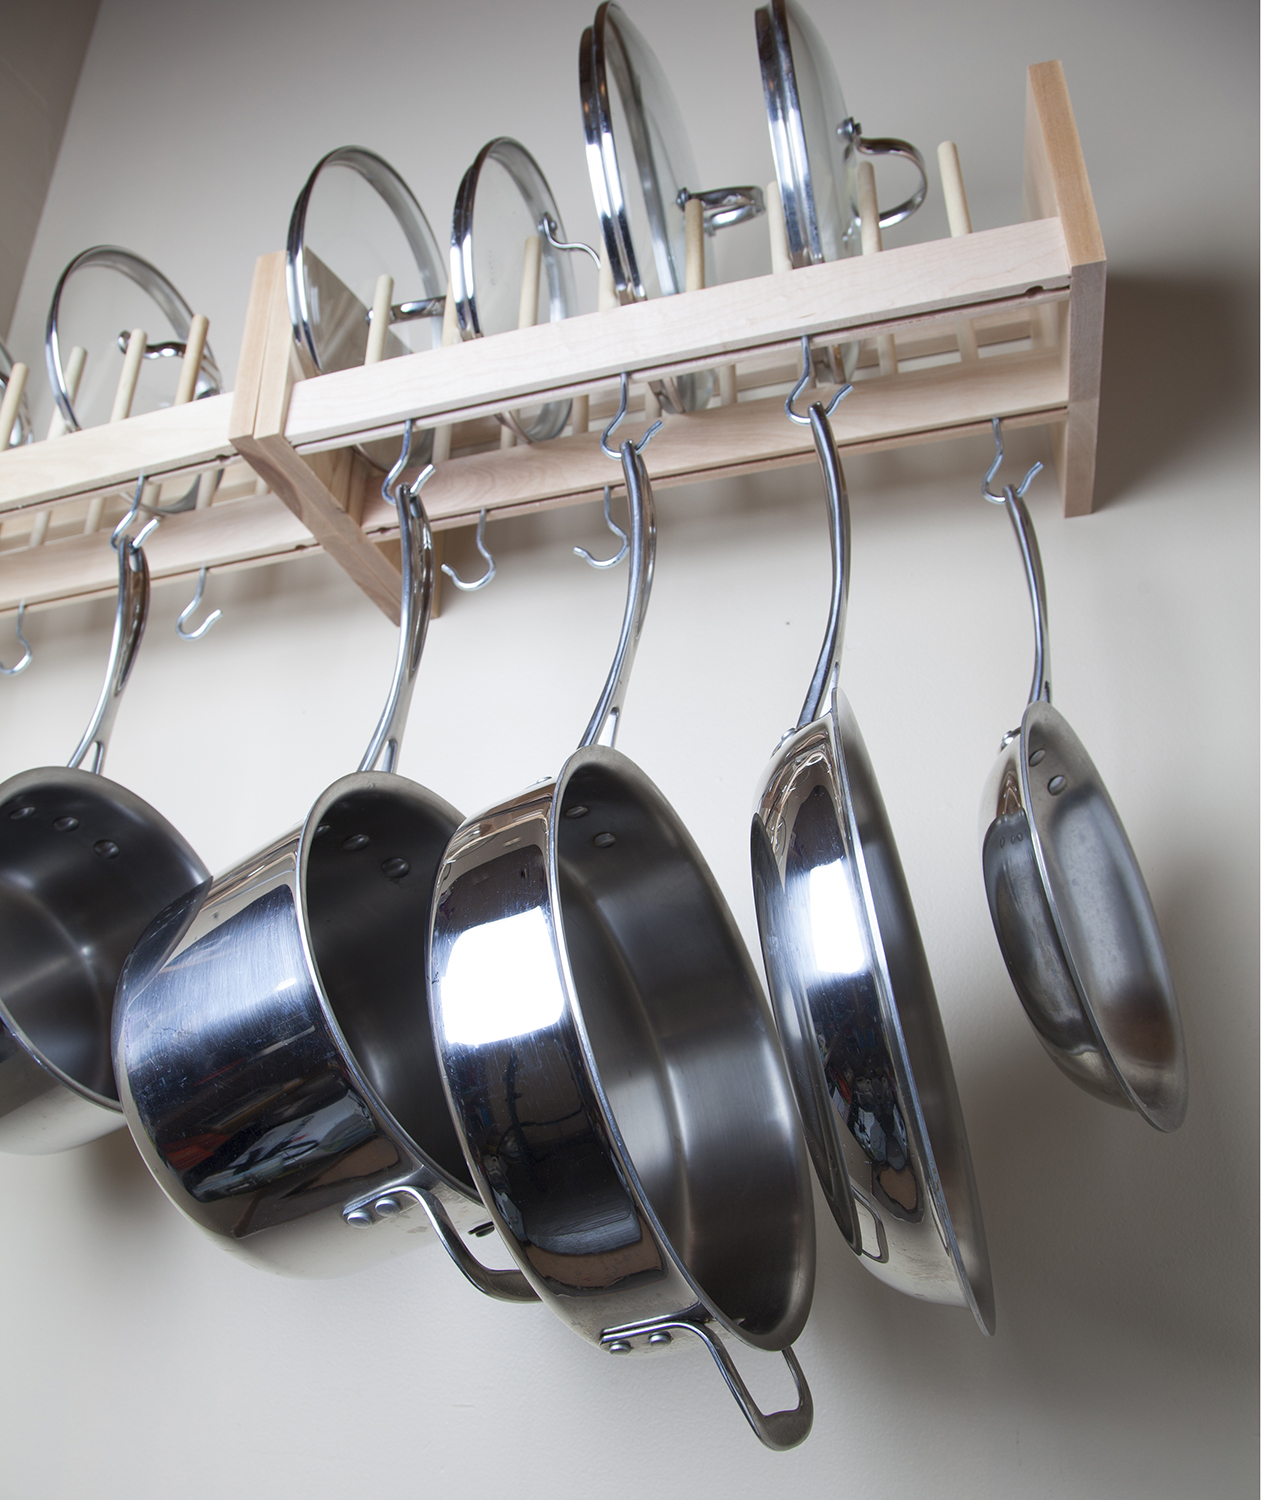 Pots and pans hanging from ceiling hook